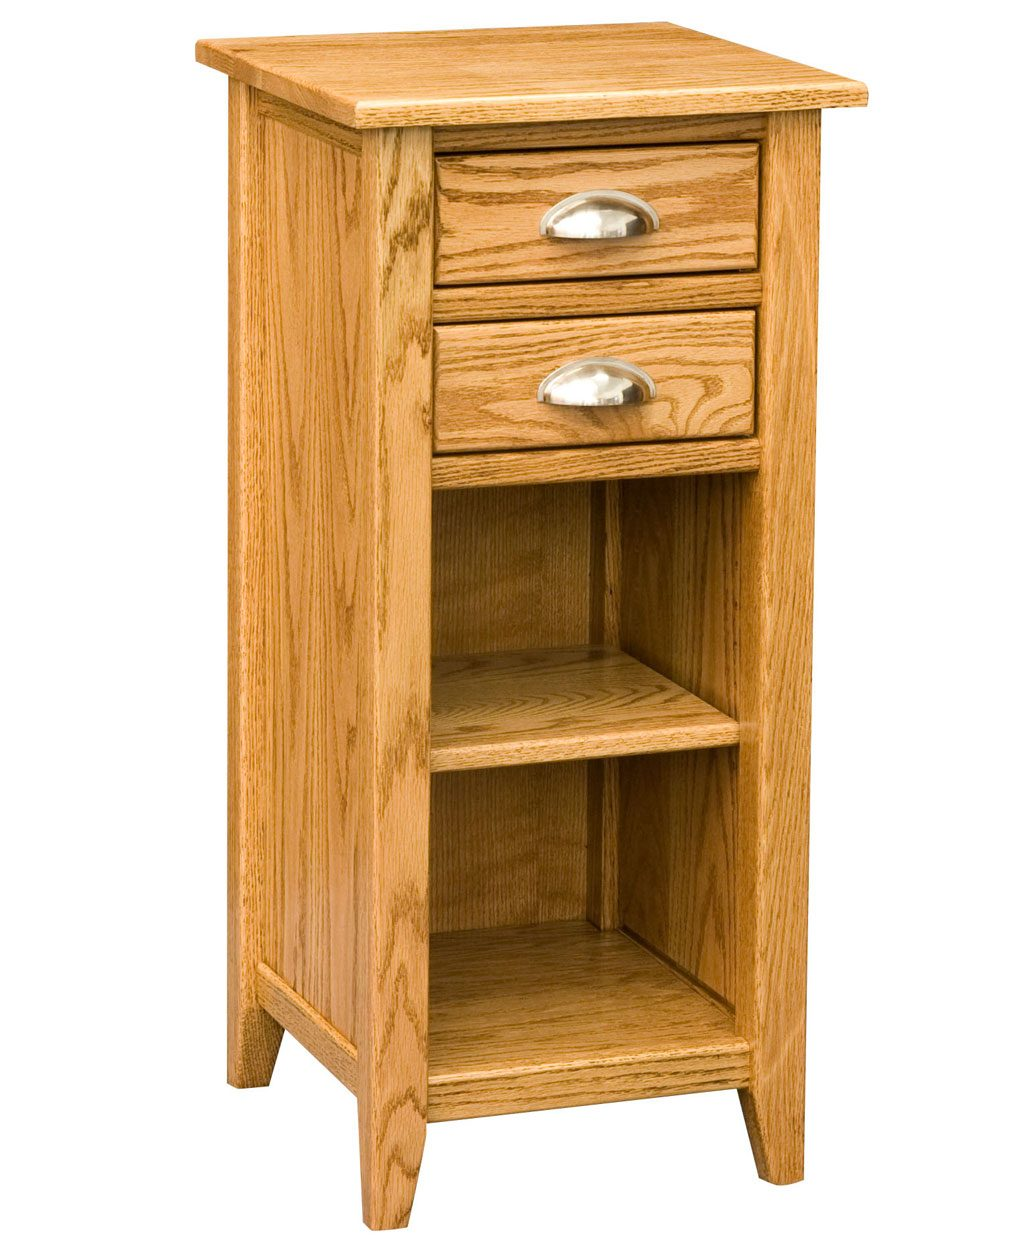 accent table cupboard amish direct furniture accenttablecupboard cabinet outdoor chaise lounge wooden floorboards mini side end tables living room coffee and barn door designs mid